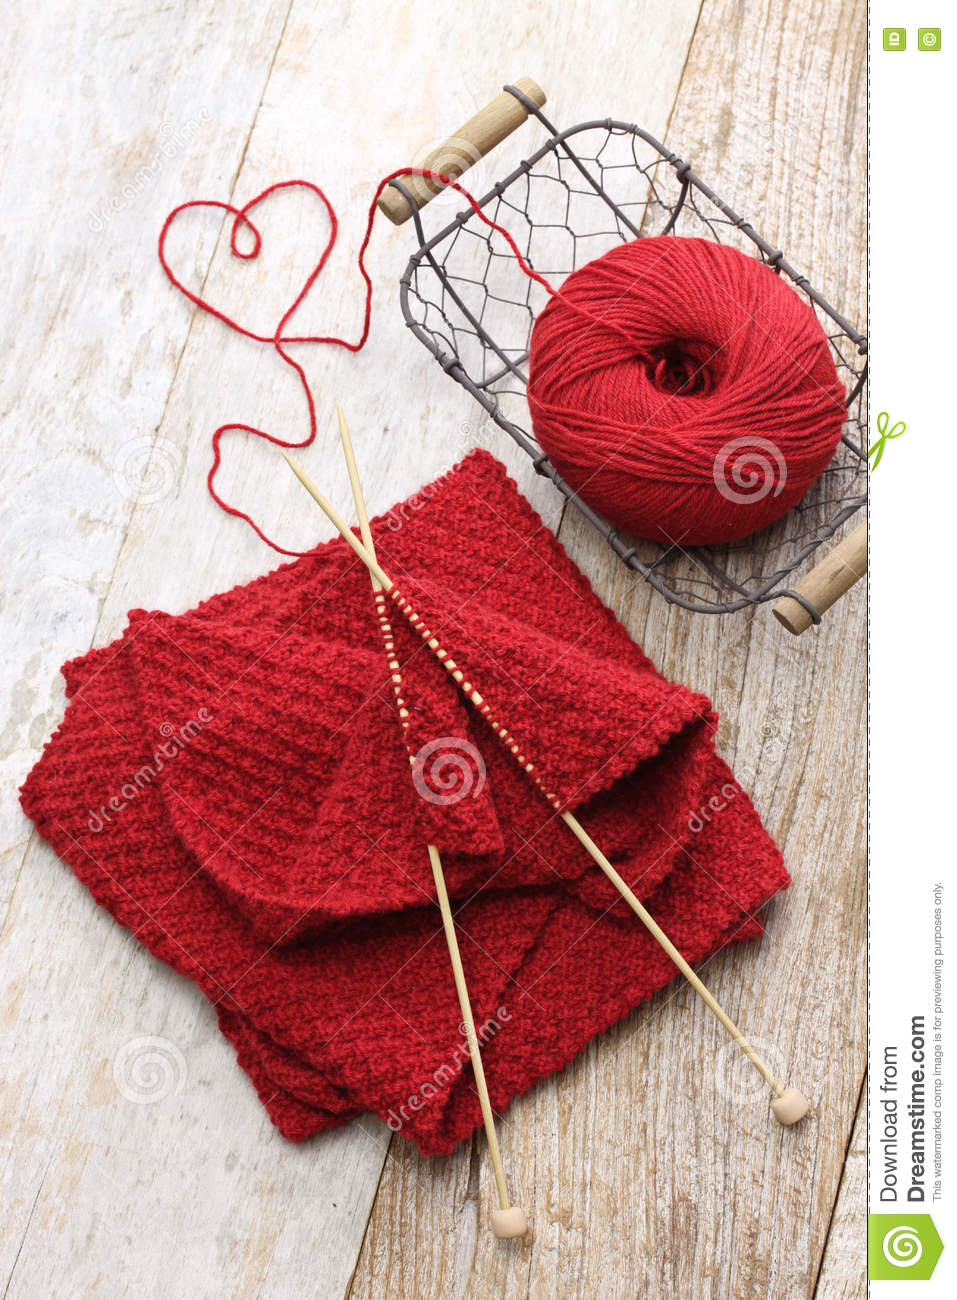 Cartoon Knitting Needles : Hand knitted red scarf and heart shaped thread royalty